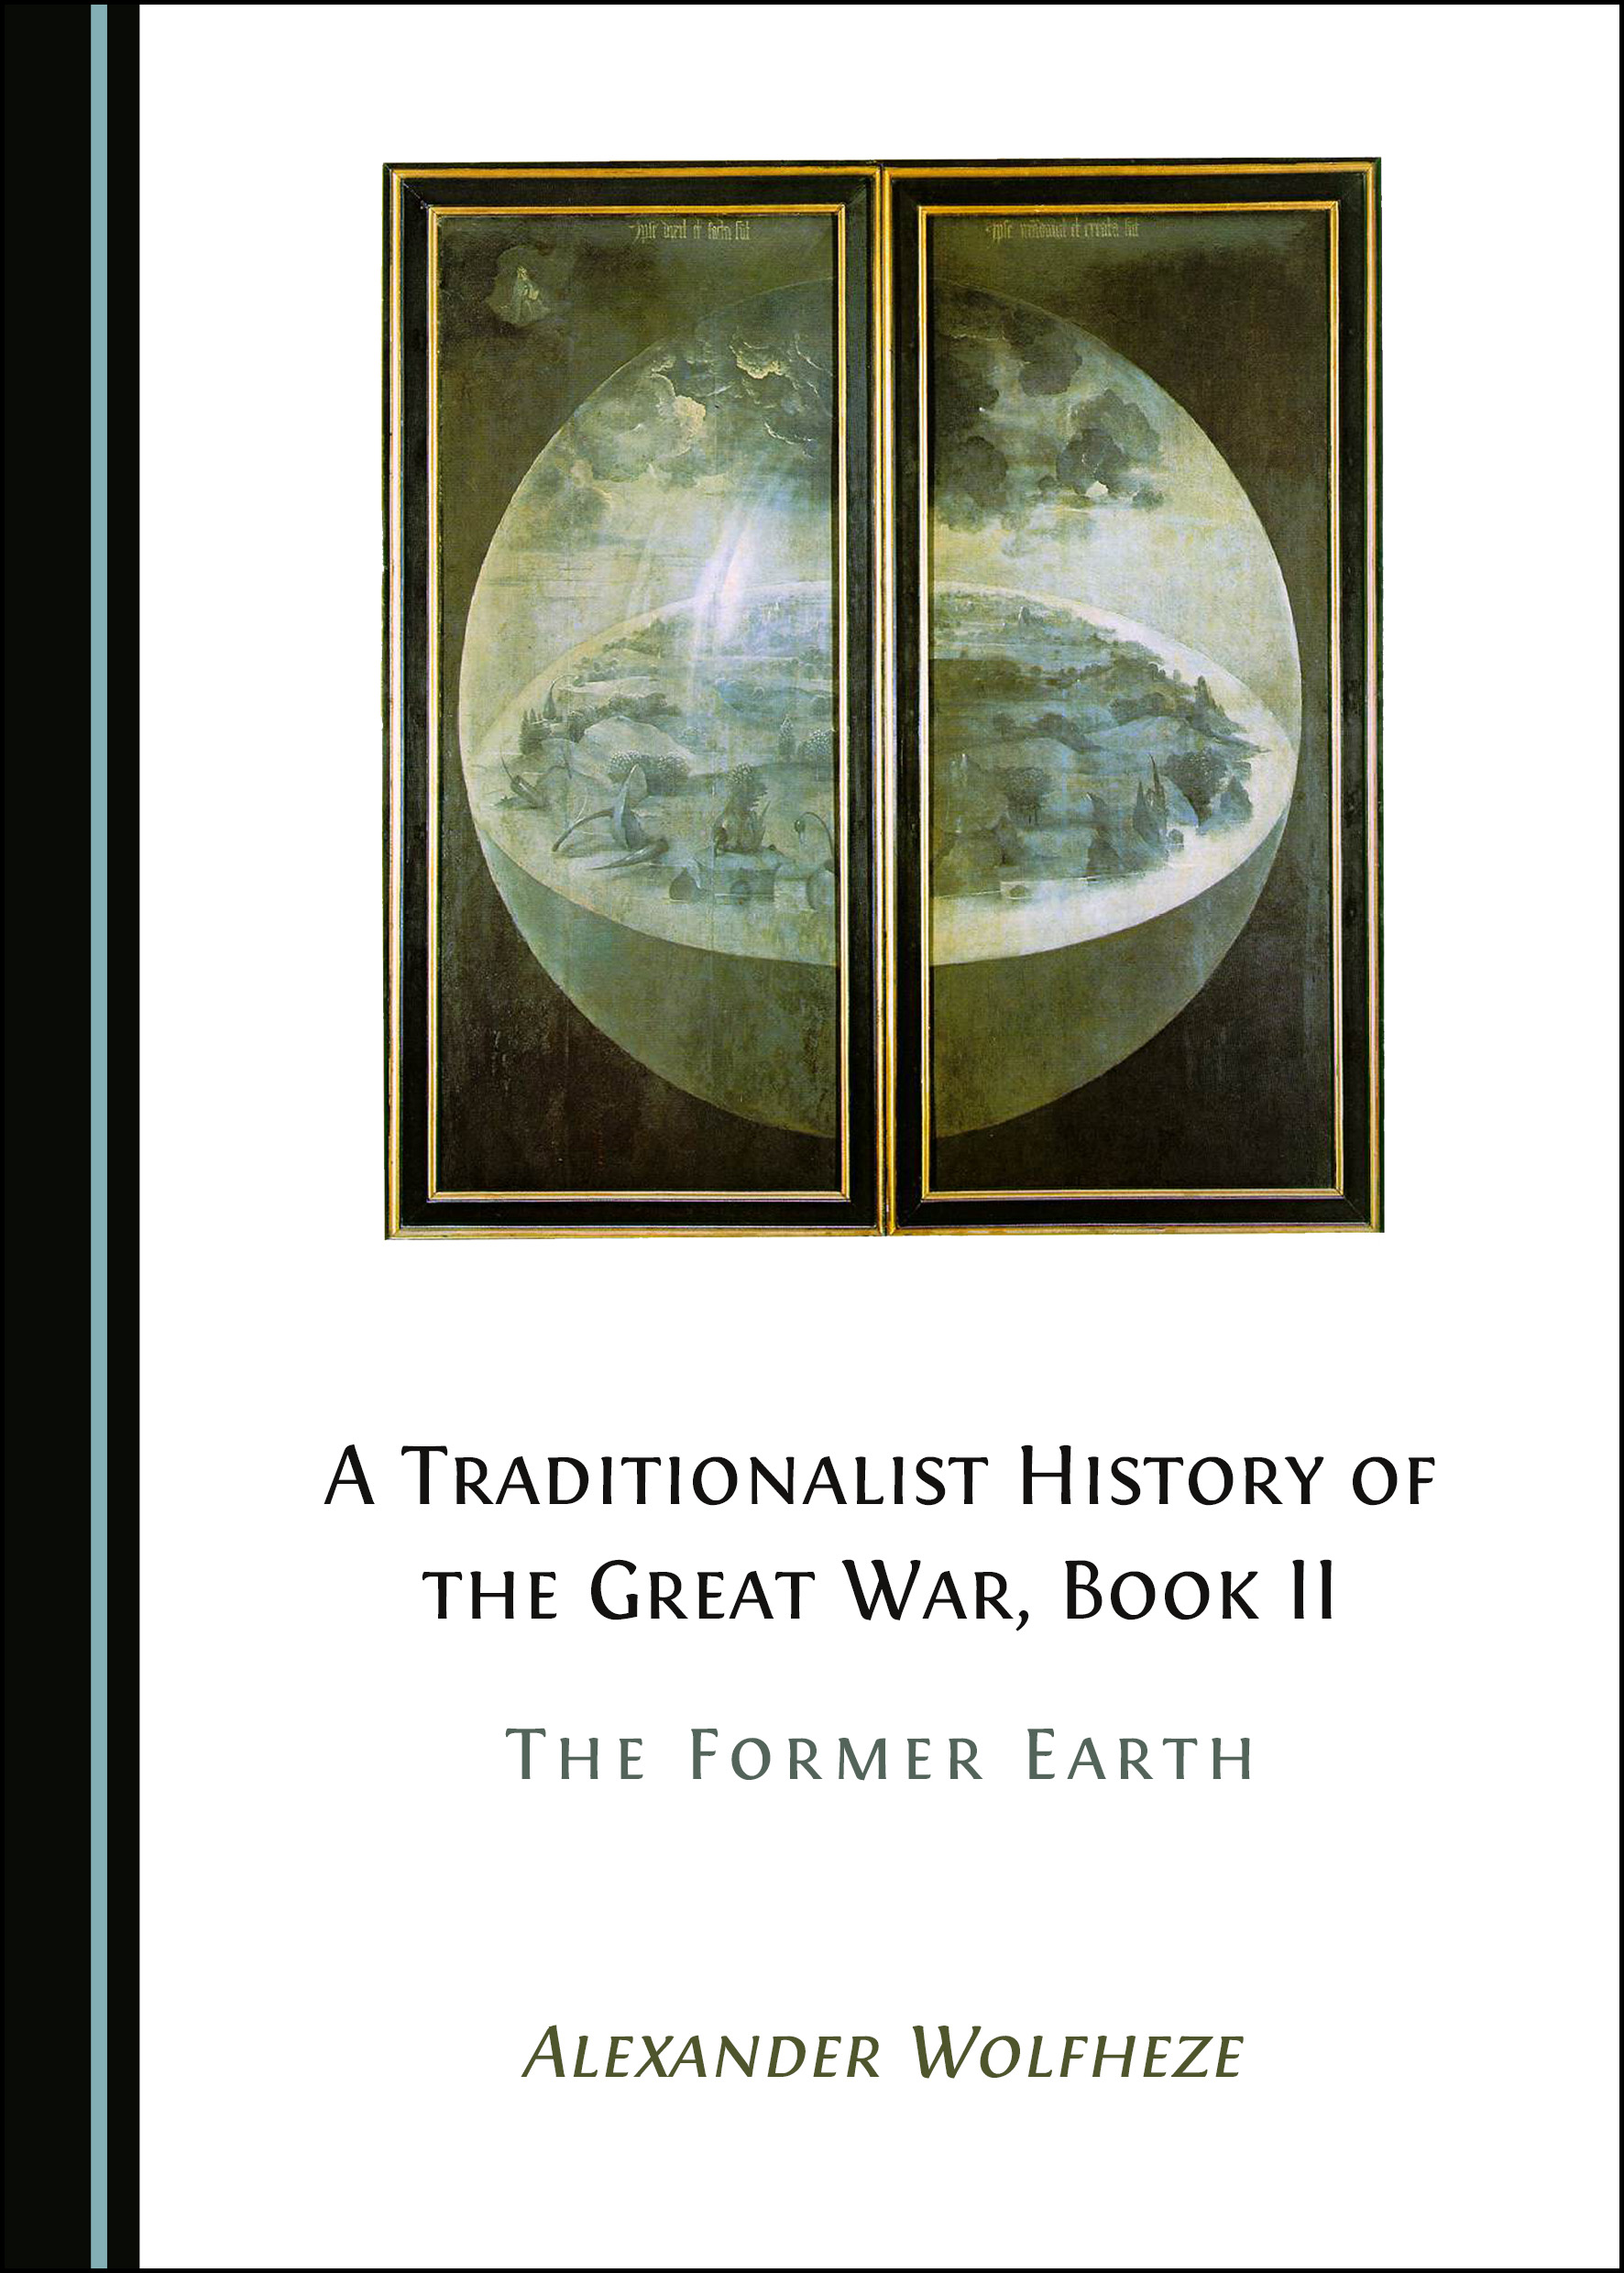 A Traditionalist History of the Great War, Book II: The Former Earth